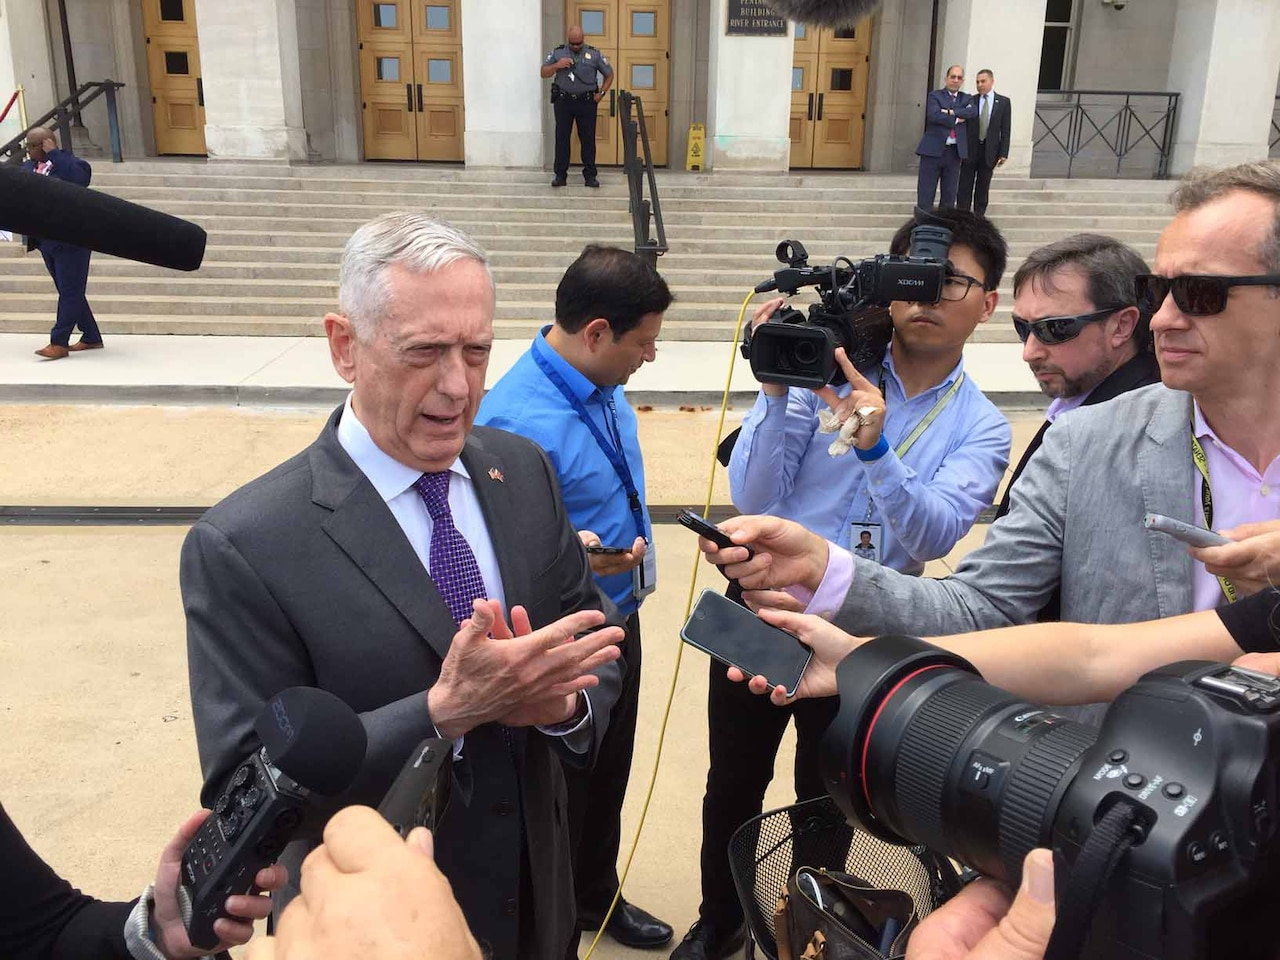 Defense Secretary James N. Mattis discusses the South Asia Strategy with reporters outside the Pentagon, Aug. 7, 2018. DoD photo by Jim Garamone